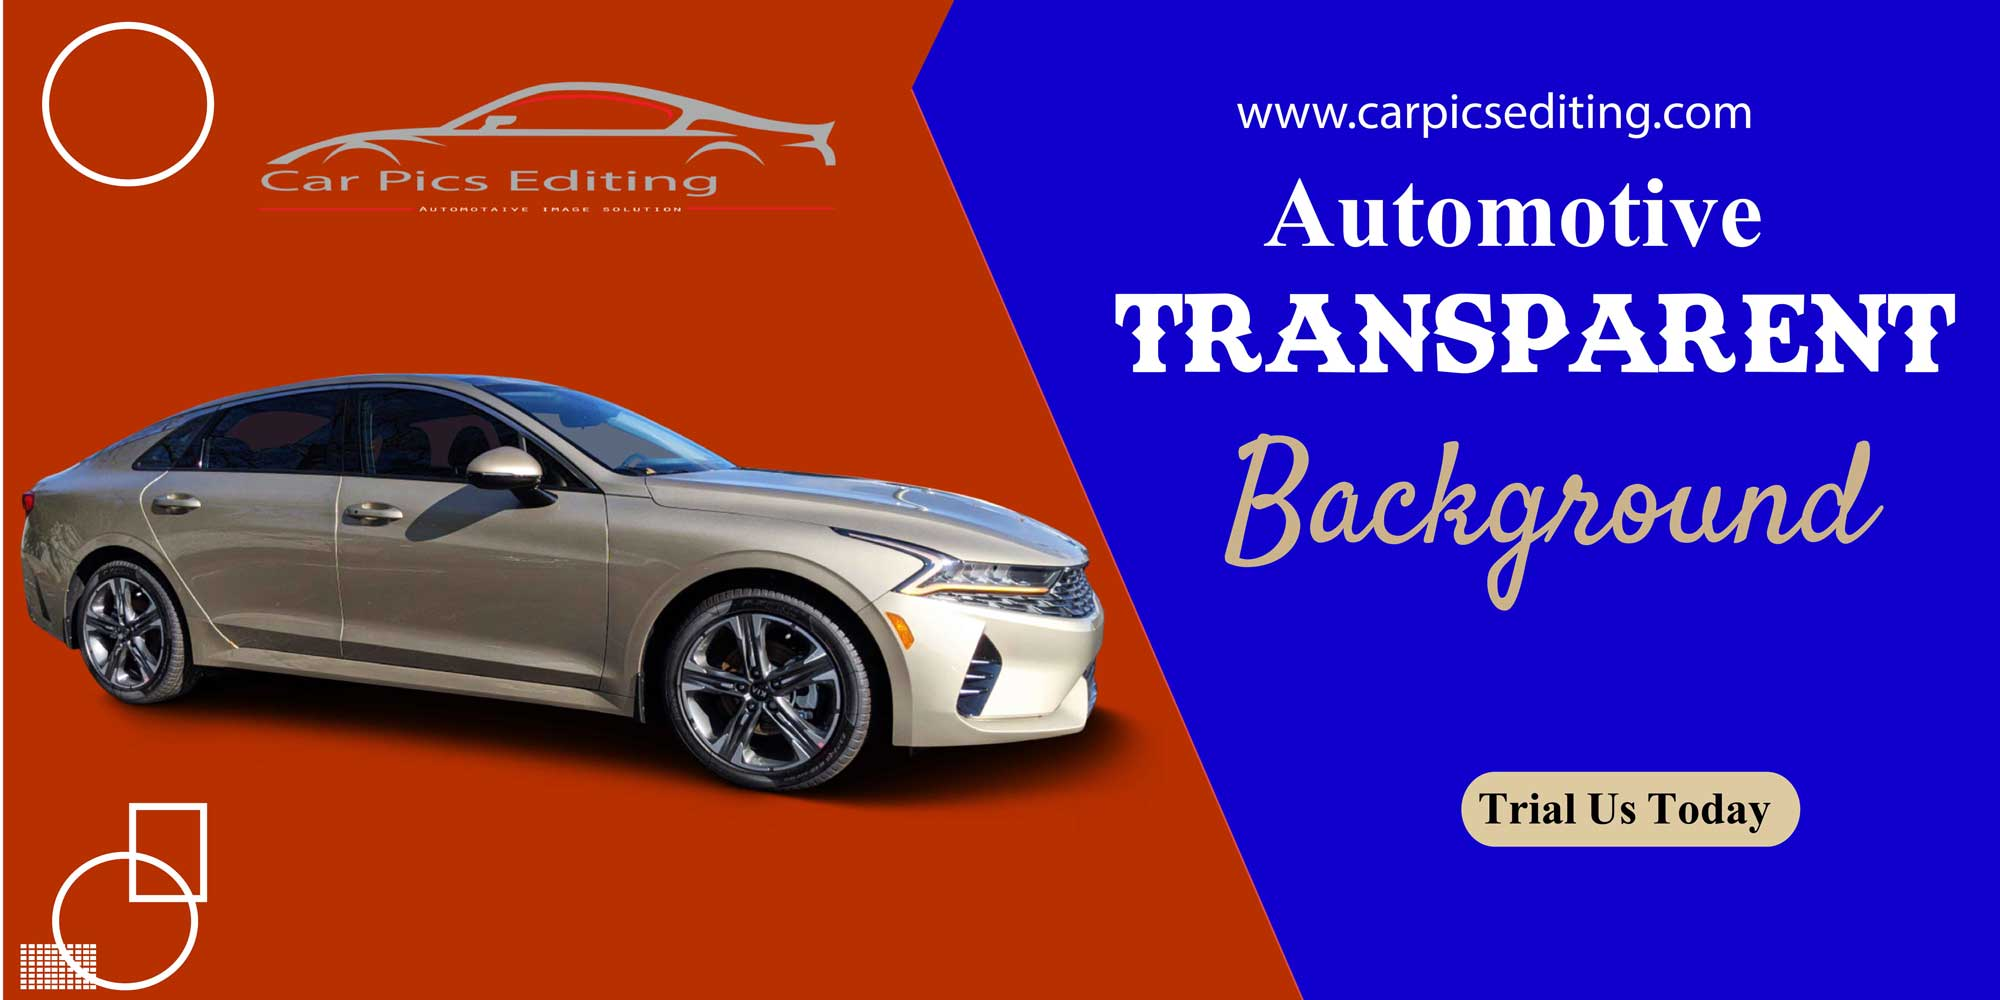 Super Easy Ways to Handle Your Car Transparent Background 4